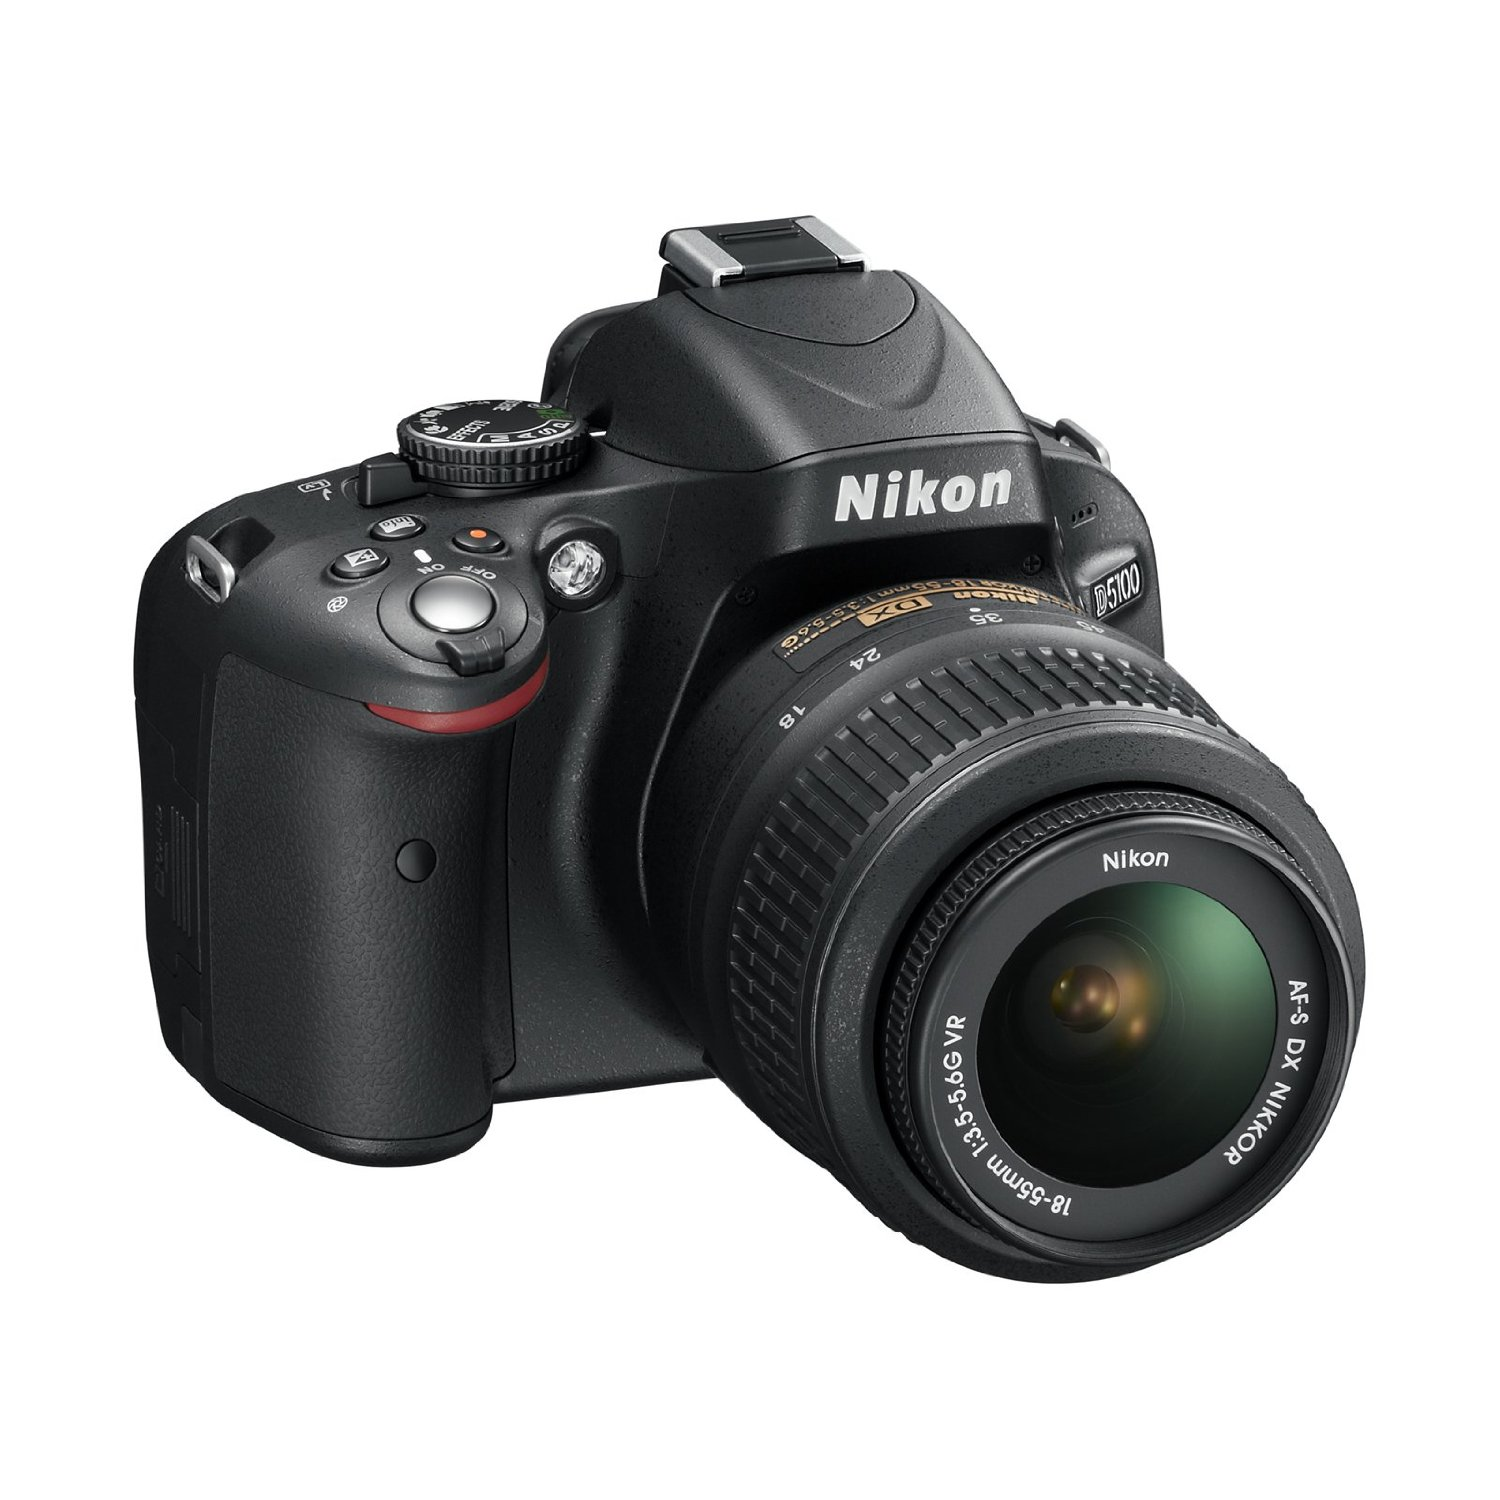 Camera Nikon Top 10 Dslr Cameras reviews of top 10 digital slr cameras capturing life with lens nikon d5100 16 2mp cmos camera 18 55mm f3 5 6 af s dx vr nikkor zoom lens